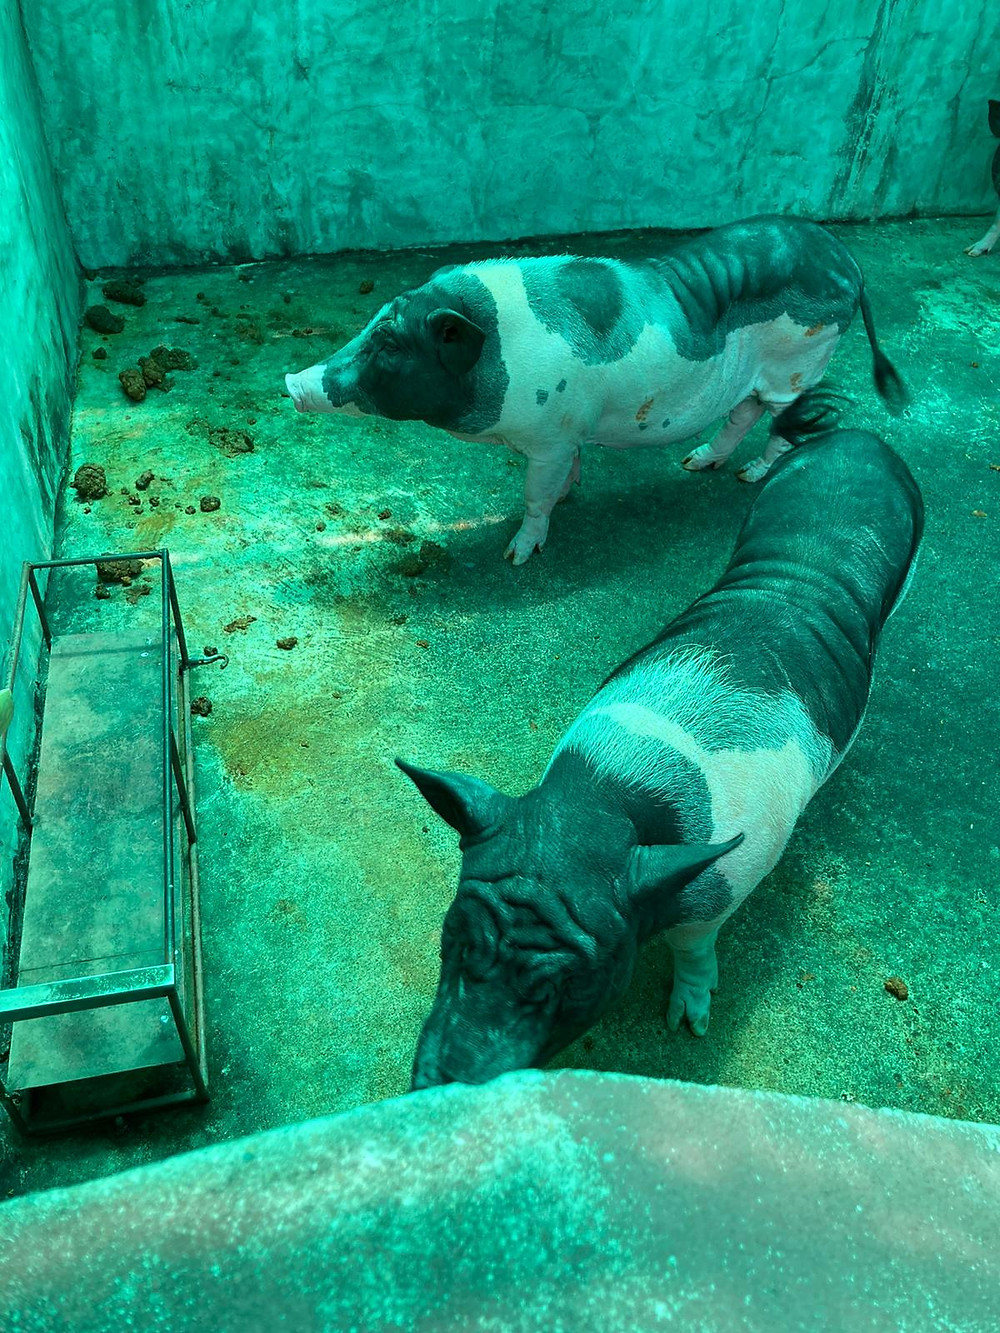 Starving pigs